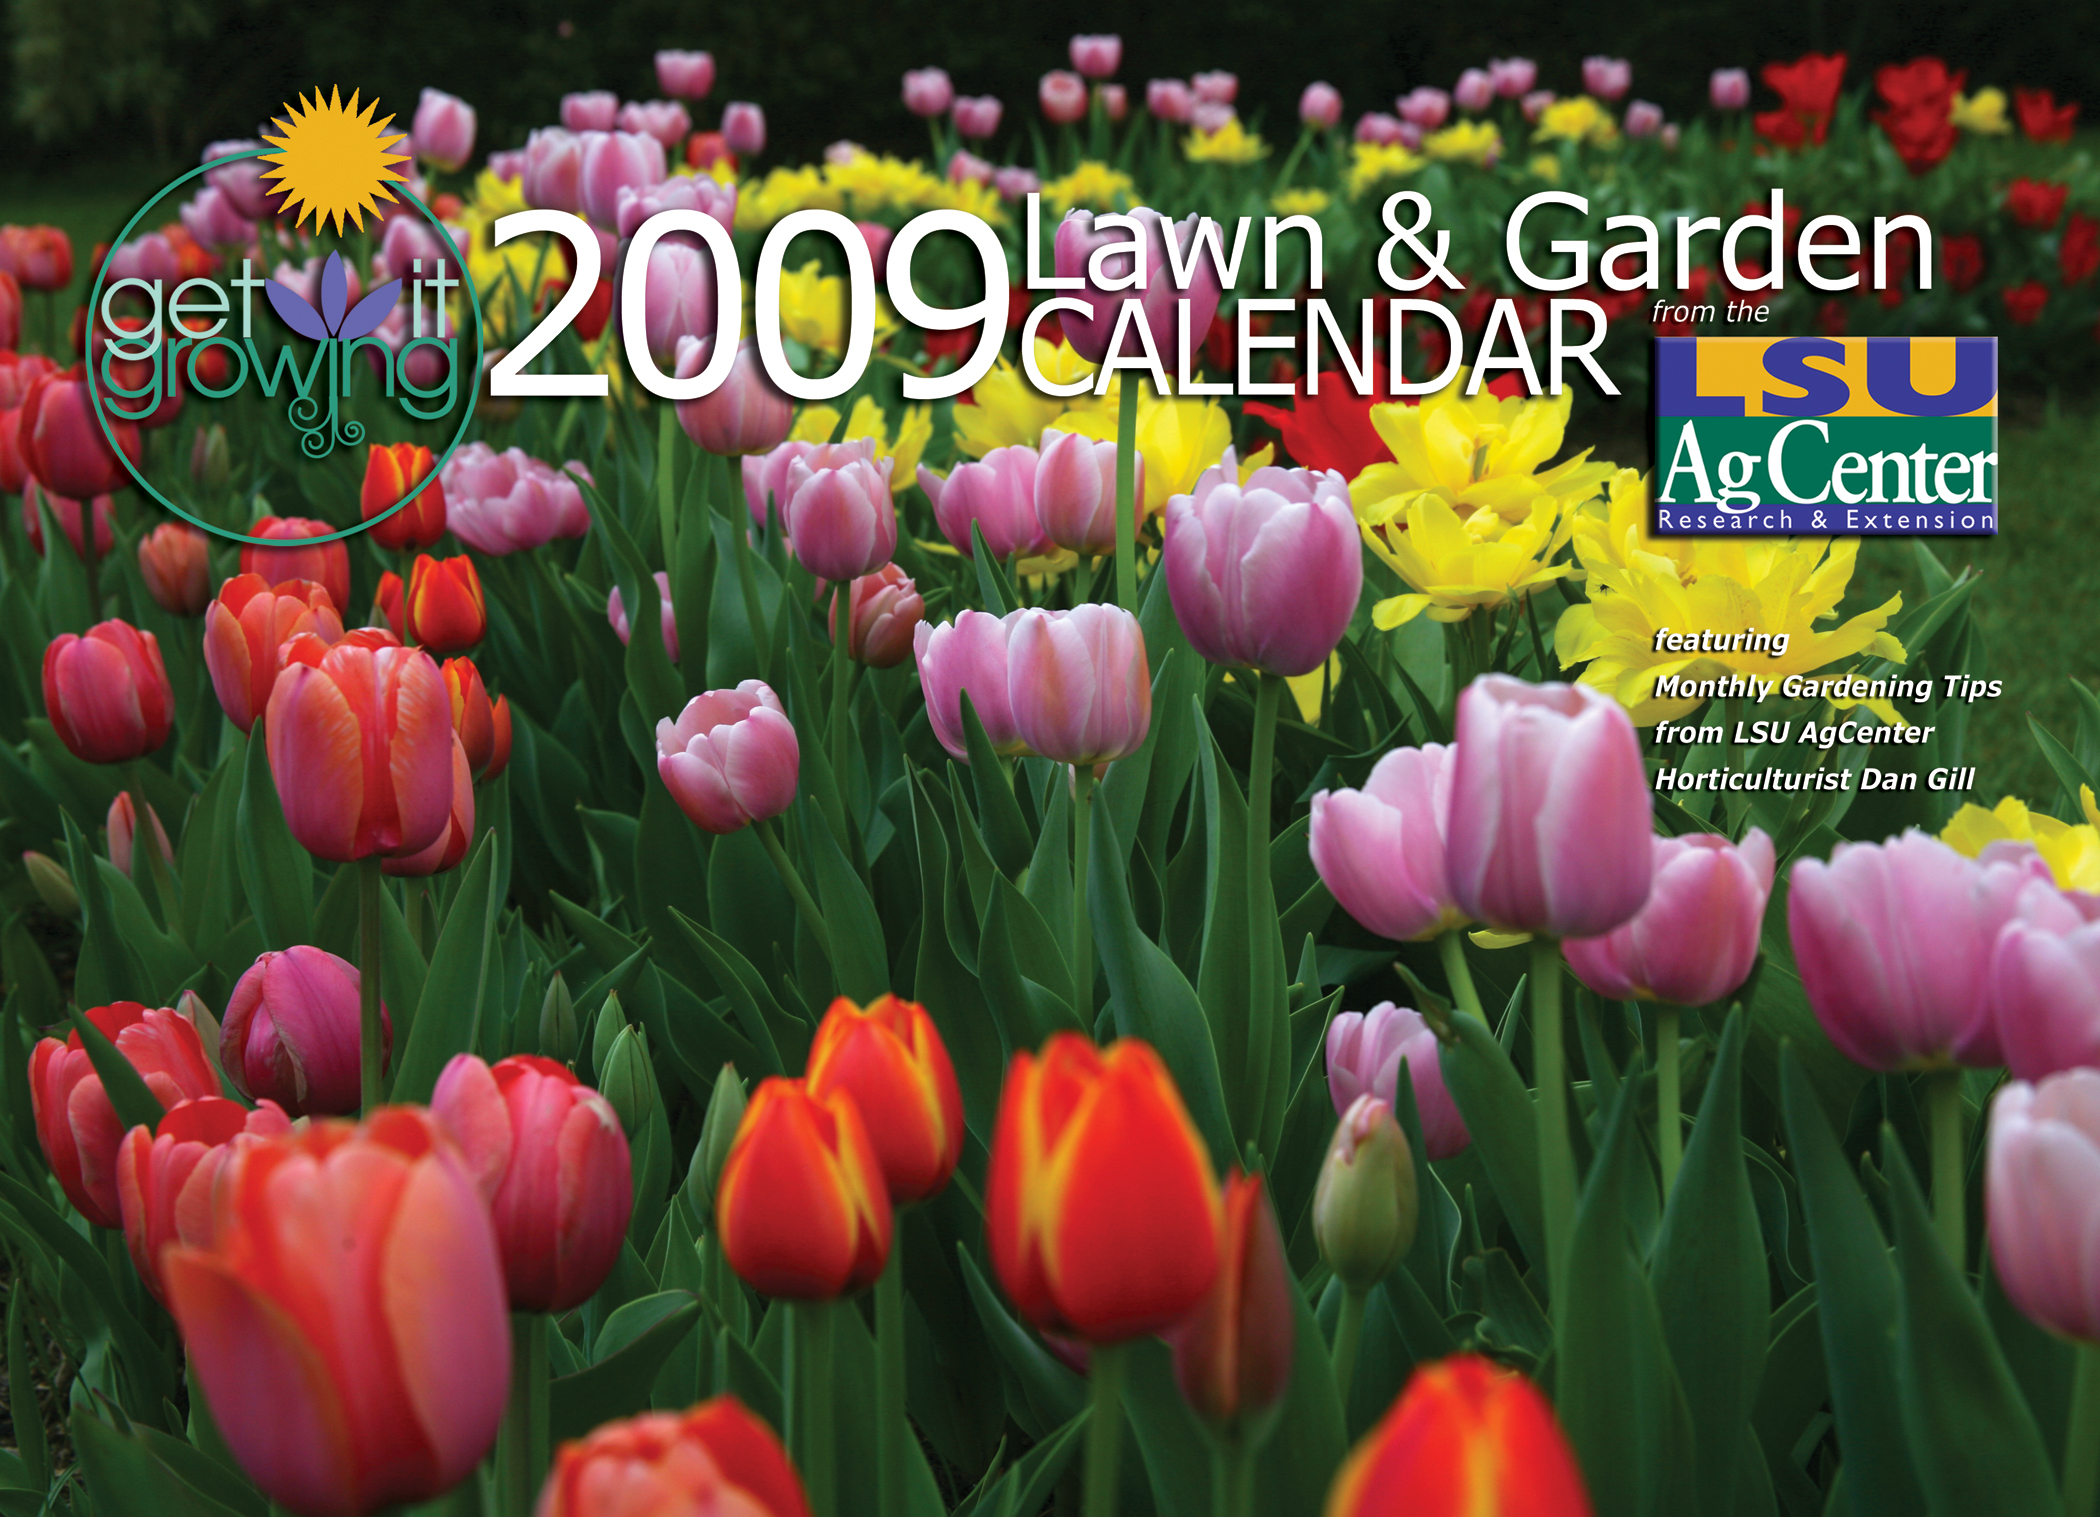 2009 Get It Growing Lawn and Garden Calendar Cover